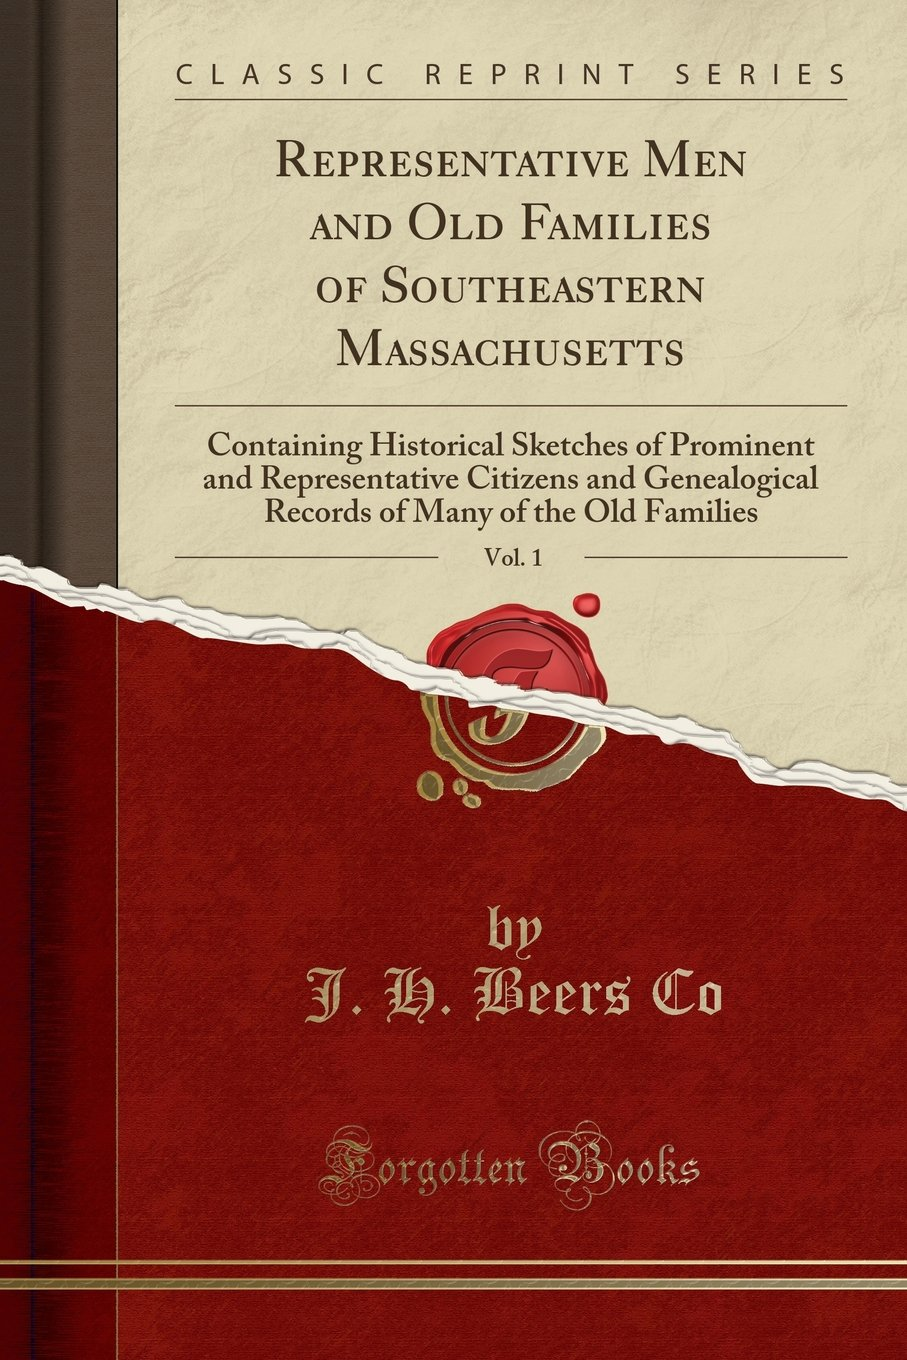 Representative Men and Old Families of Southeastern Massachusetts, Vol. 1: Containing Historical Sketches of Prominent and Representative Citizens and ... of Many of the Old Families (Classic Reprint) ebook